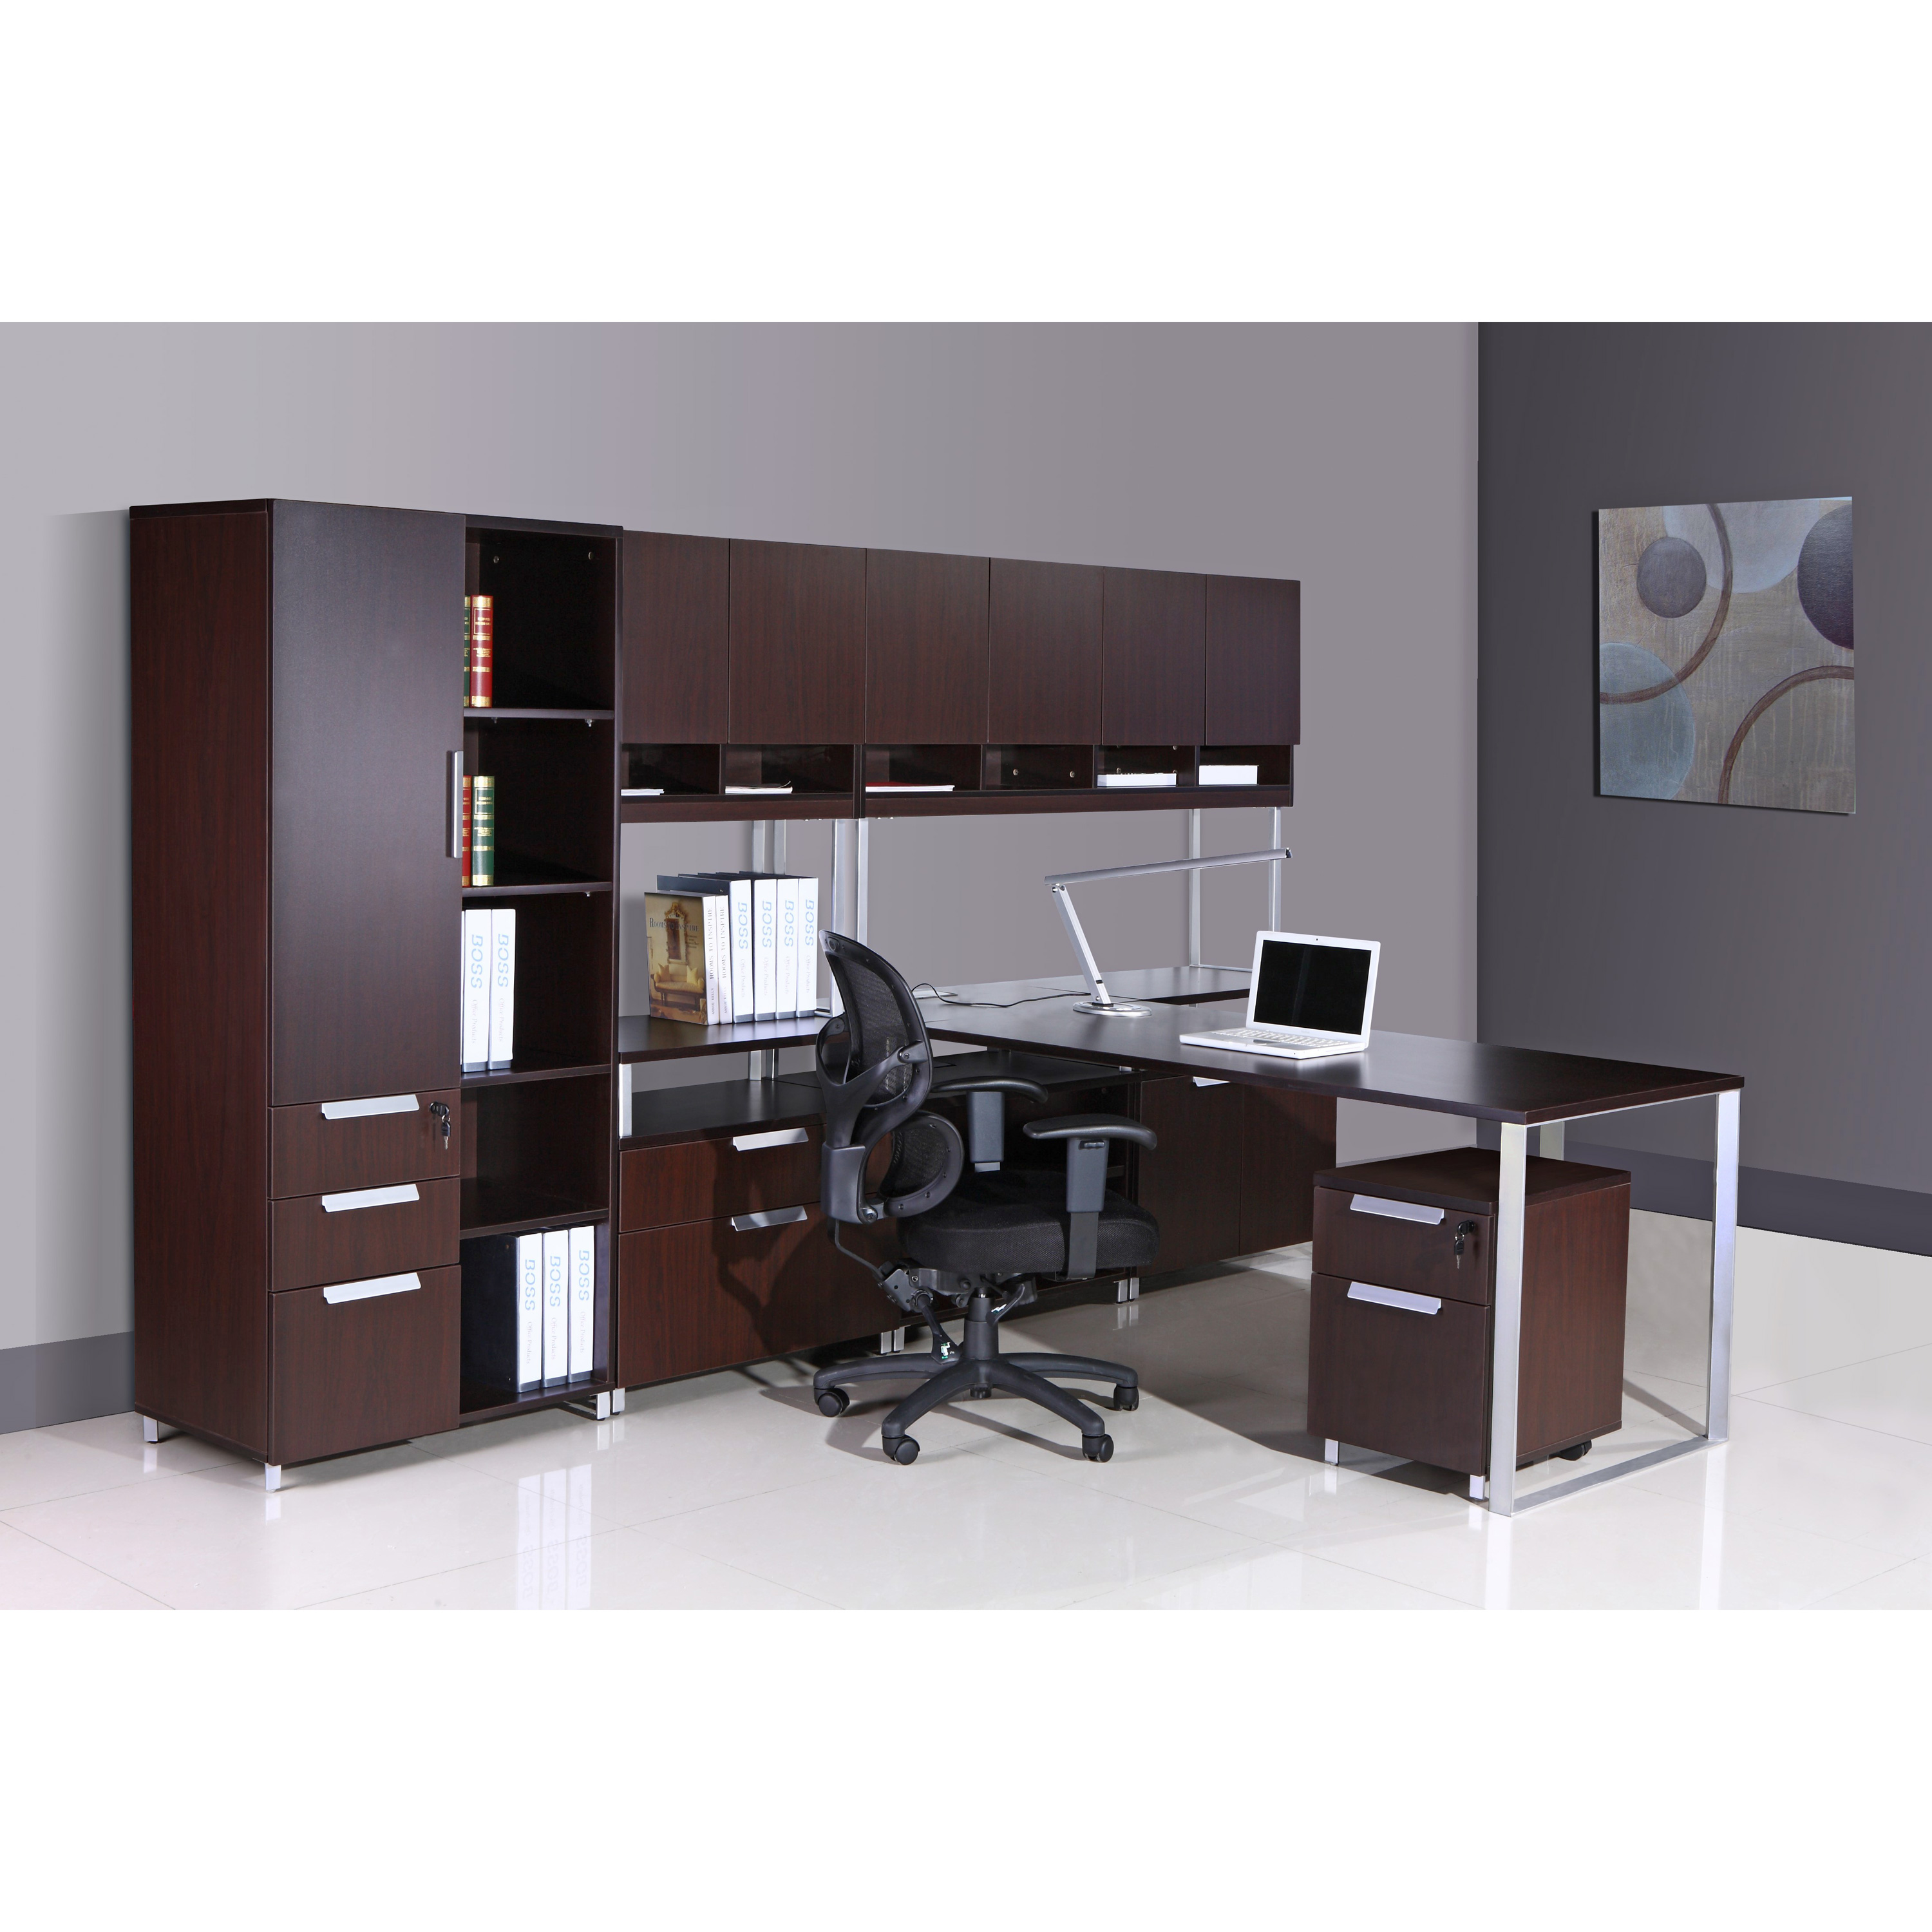 Office Wall Cabinet. Plain Office Beautiful Sleek Stylish Wooden Filing  Cabinets Modern Office Room Decoration